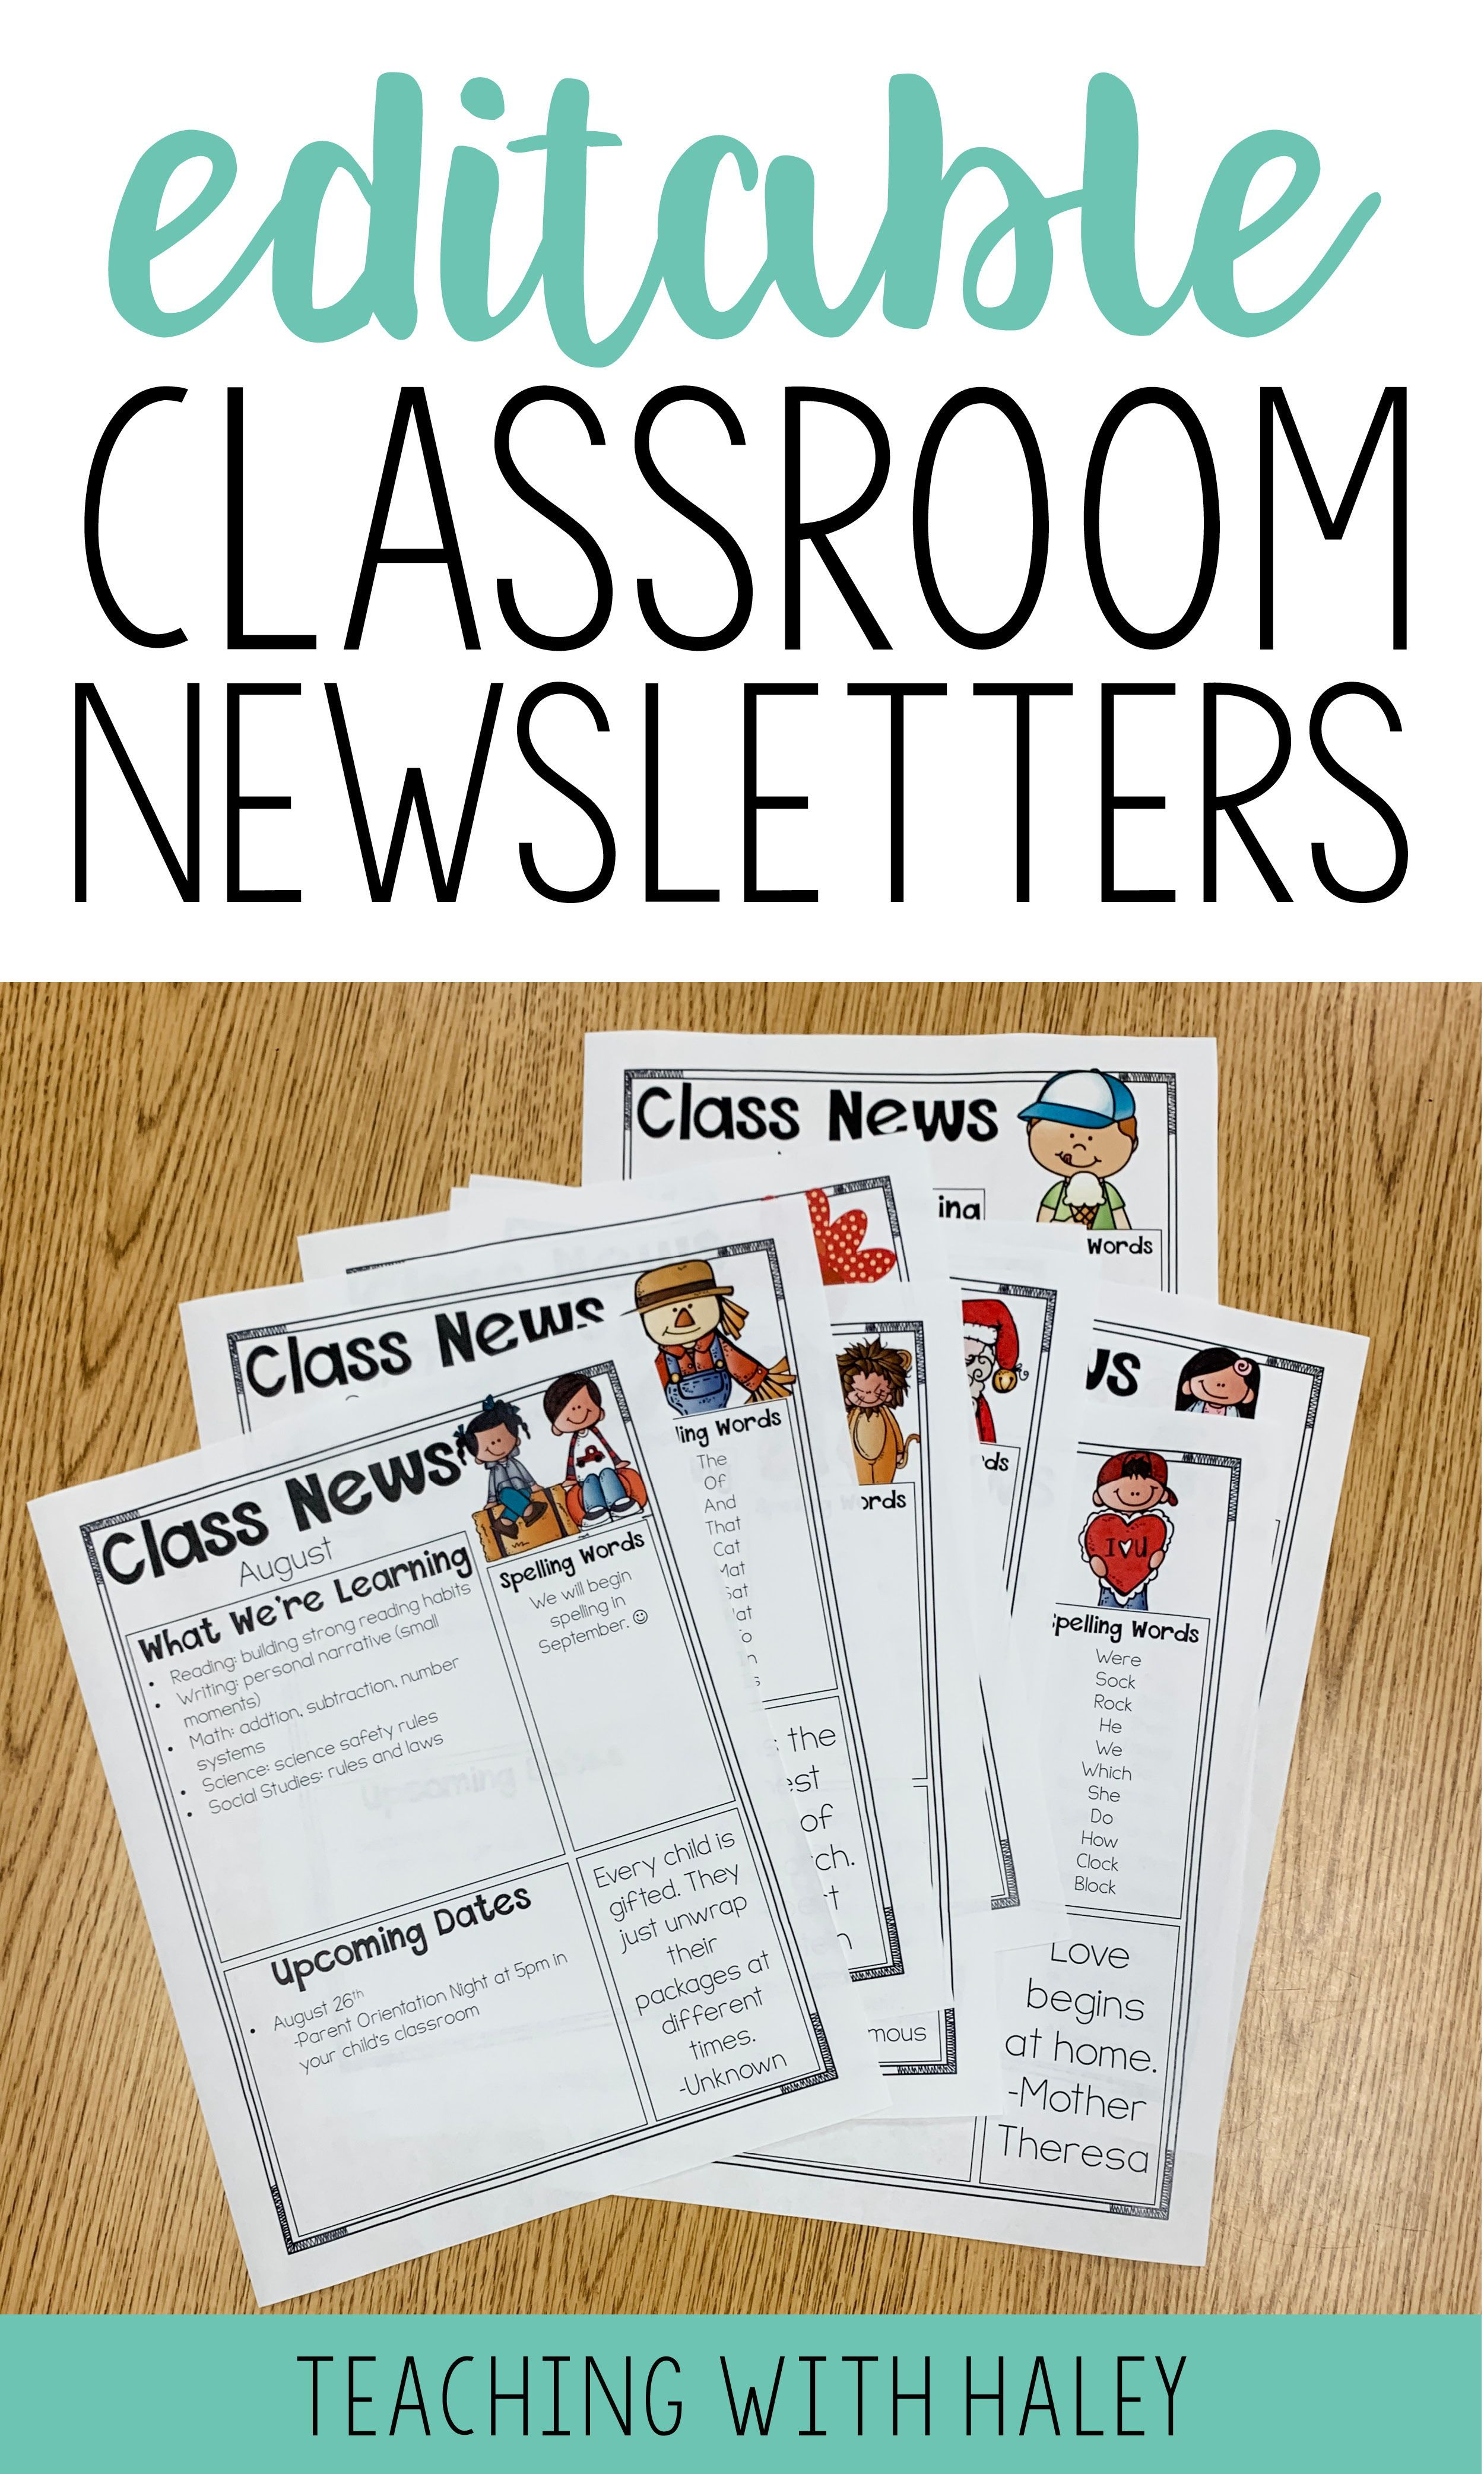 Editable Newsletter Template Over 110 Designs Editable Newsletter Templates Classroom Newsletter Life Skills Classroom